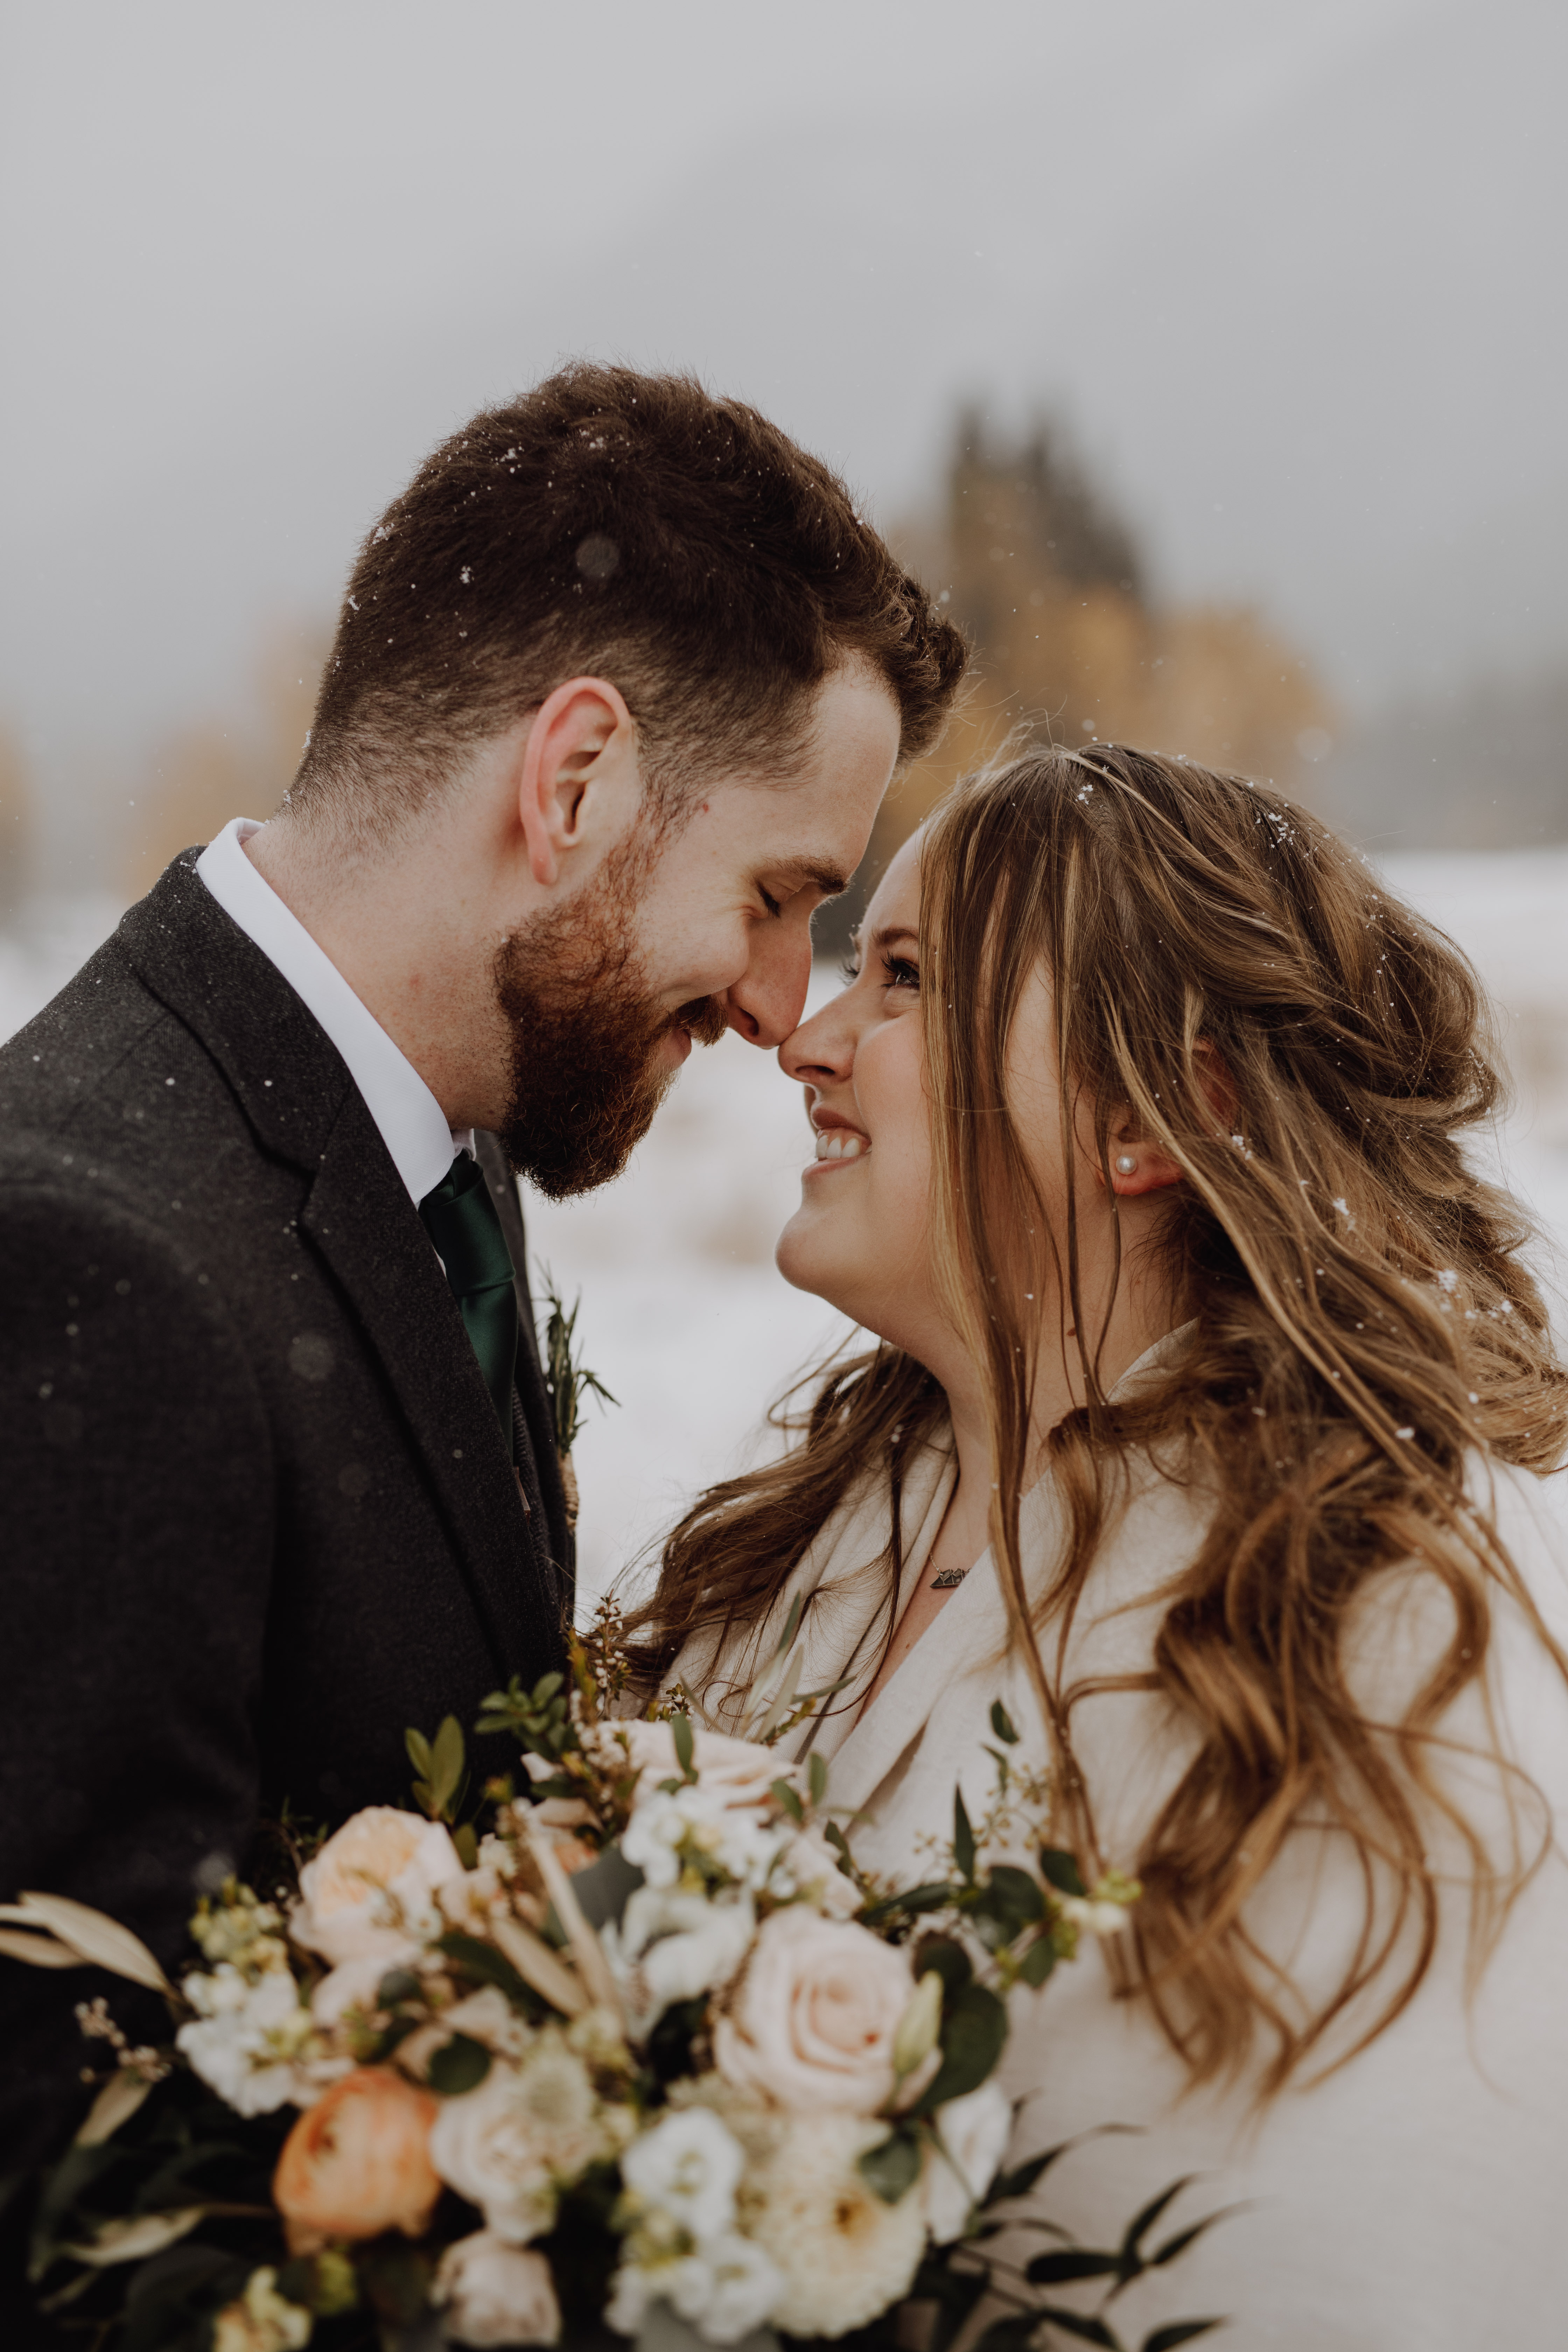 Banff Wedding - portraits in the snow